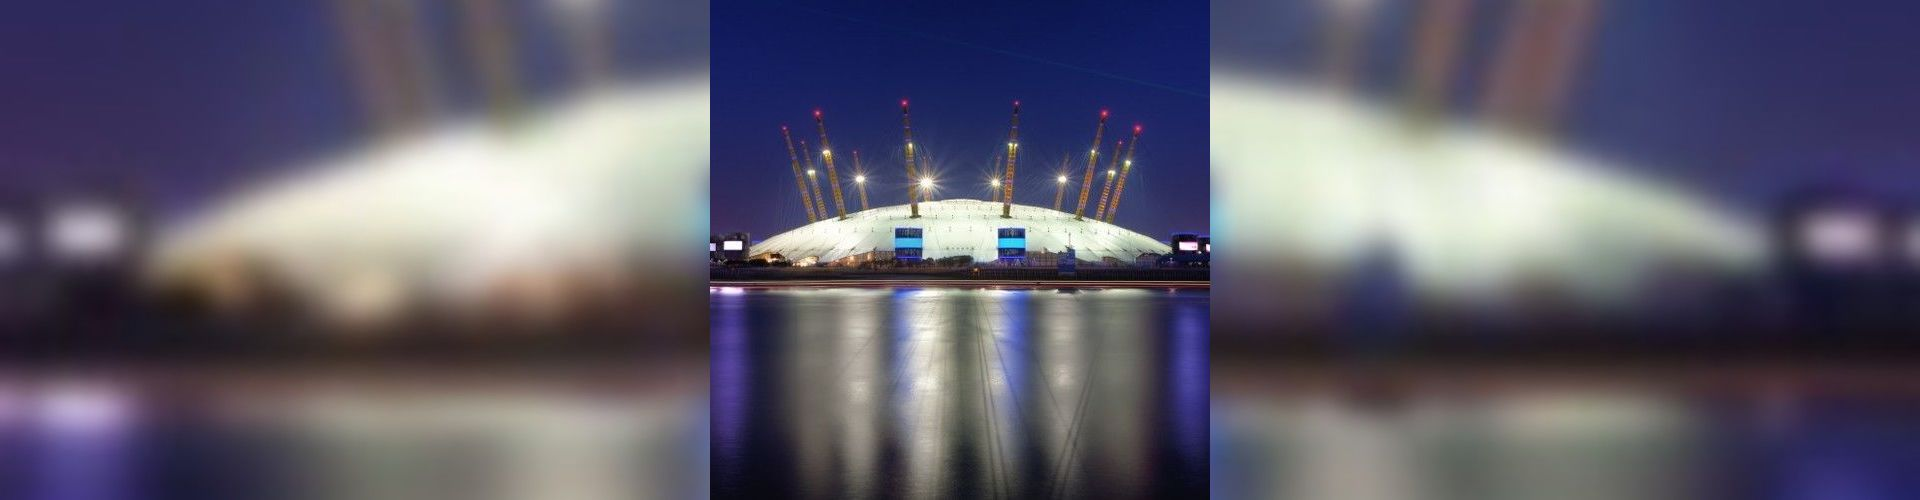 Logo night o2 arena london uai 516x516